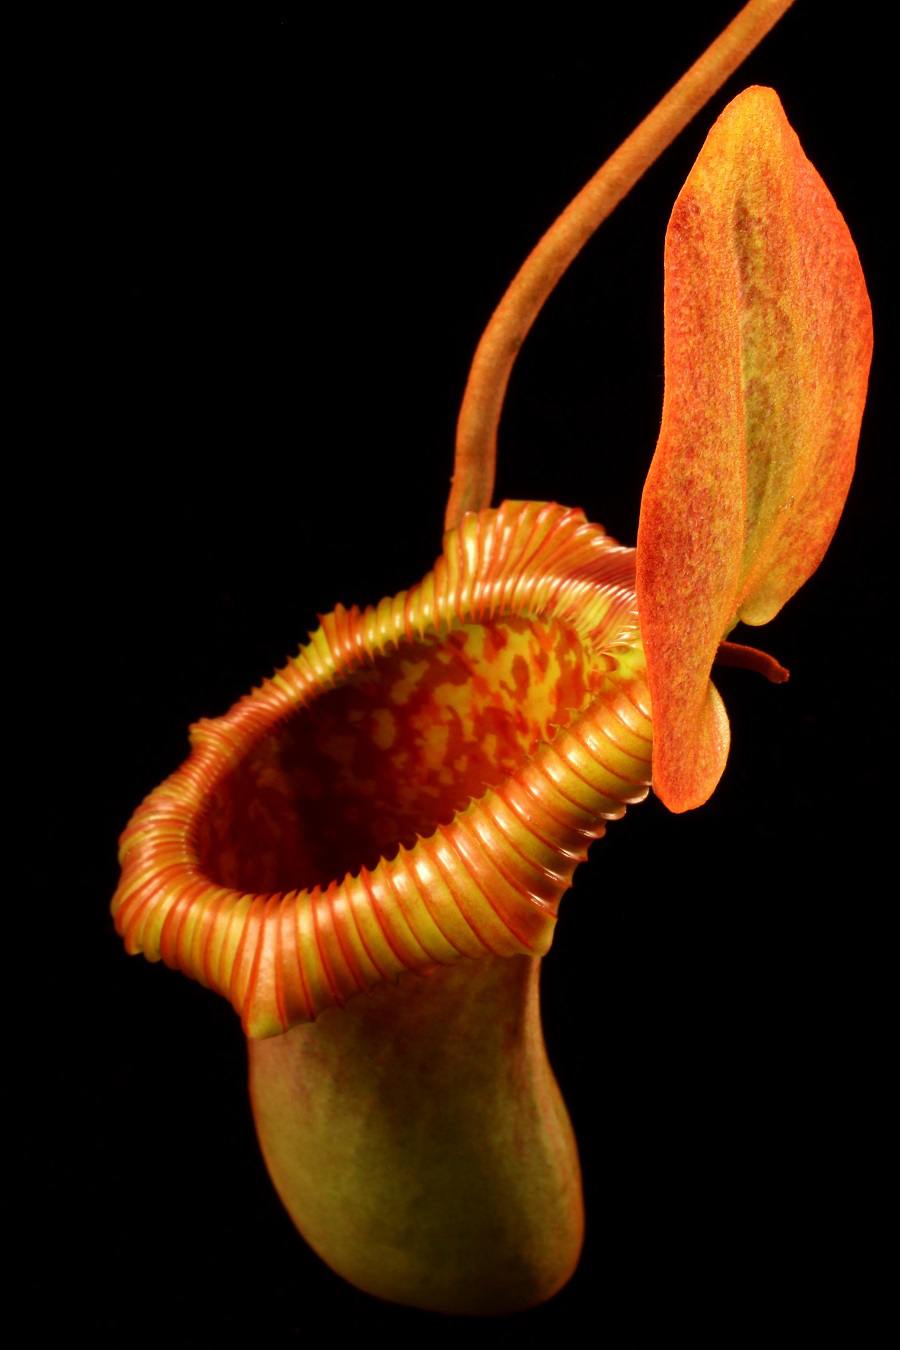 nepenthes-x-trusmadiensis